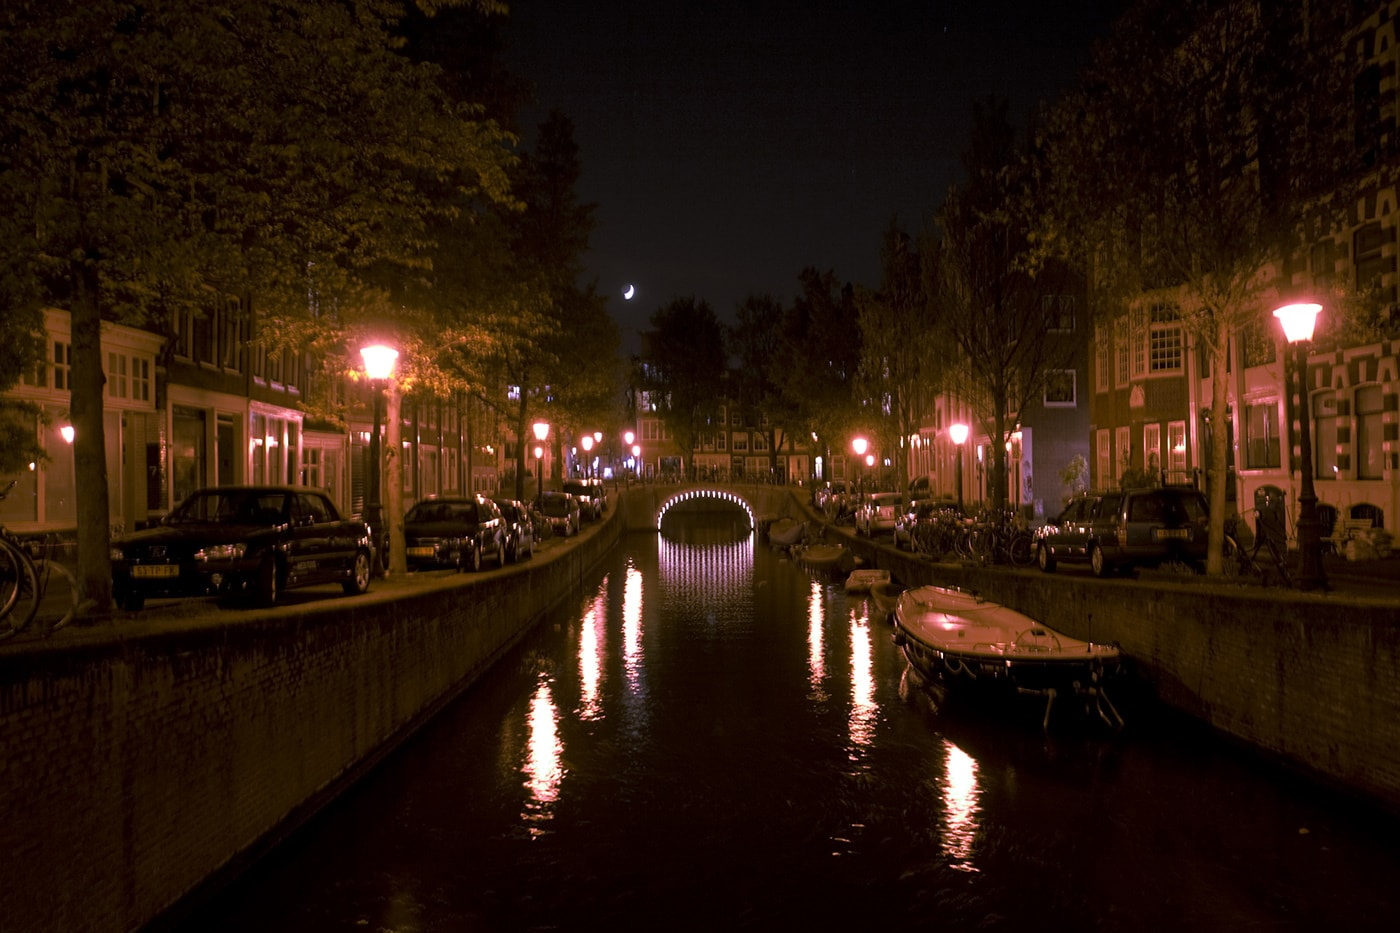 Canals in Amsterdam at night.